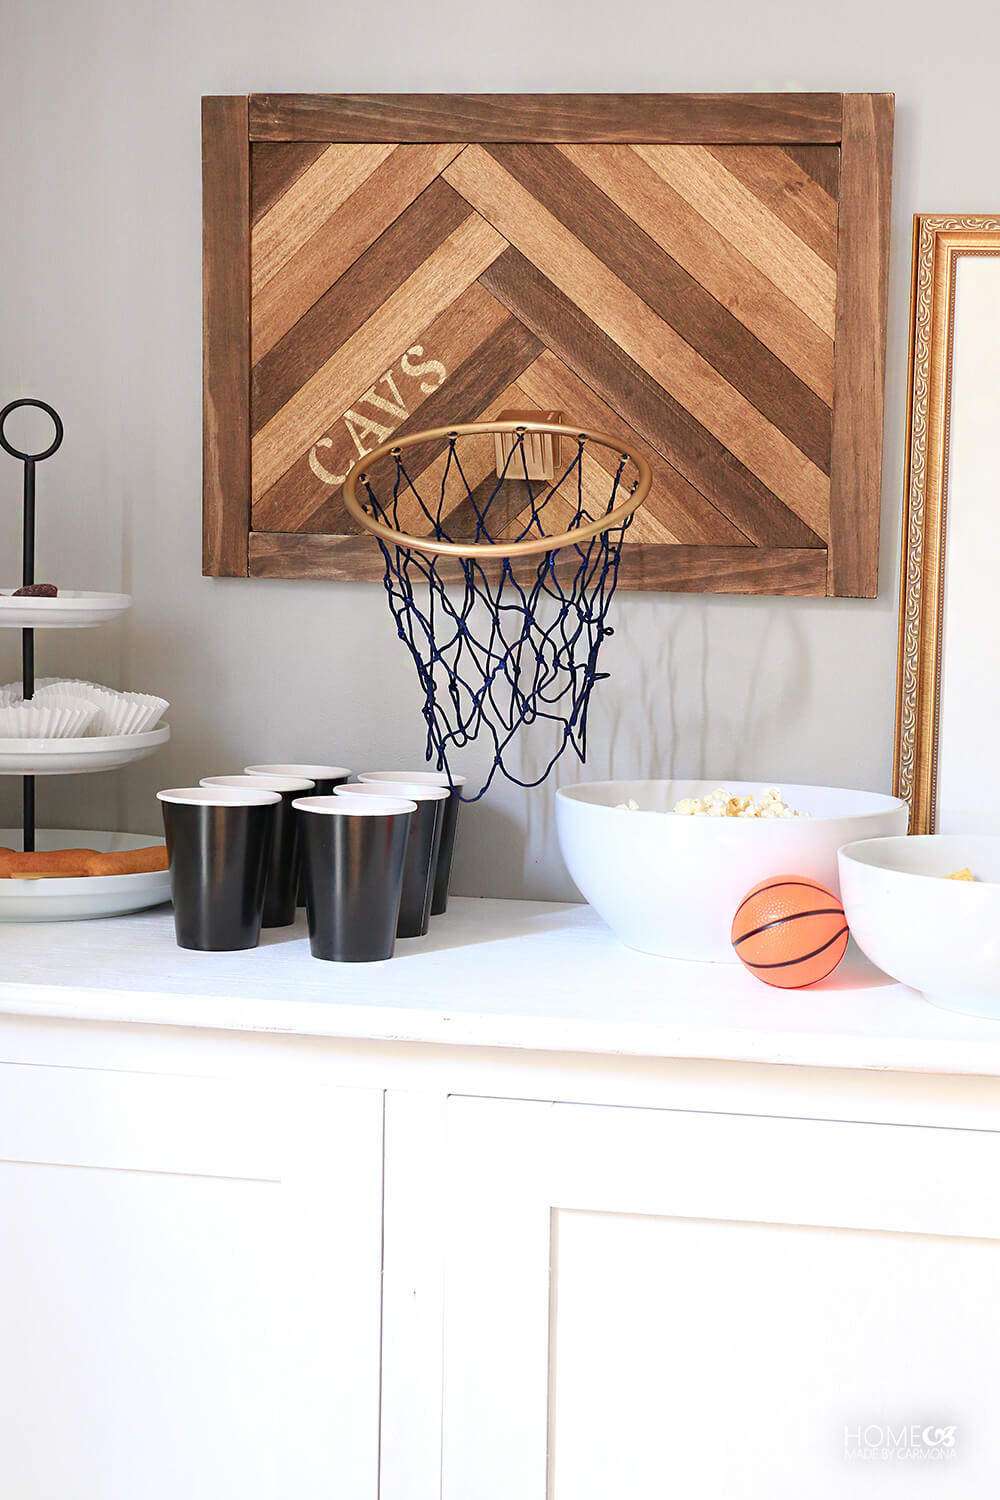 CAVS-basketball-hoop-wall-decor